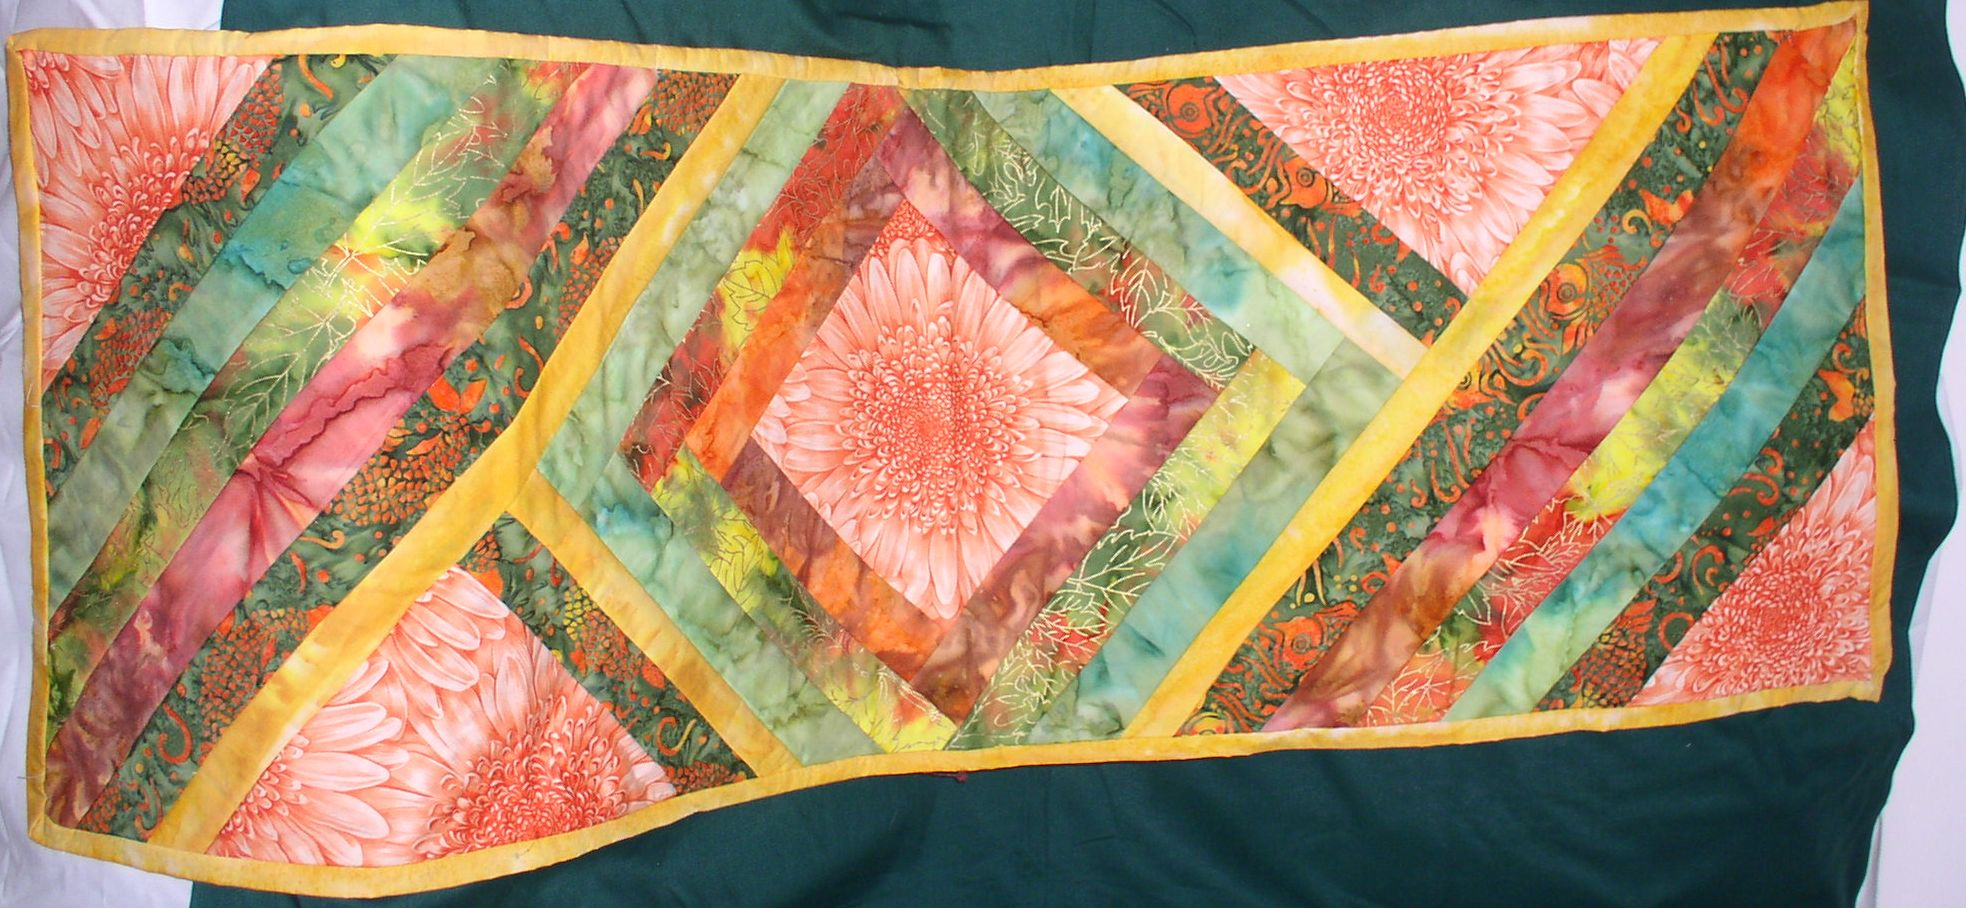 This Is A Table Runner Quilted, Using A Focus Fabric, In Center And 4 Other  Pieces, With Fabric That Compliments The Focus. This Is Rectangular For  Long ...